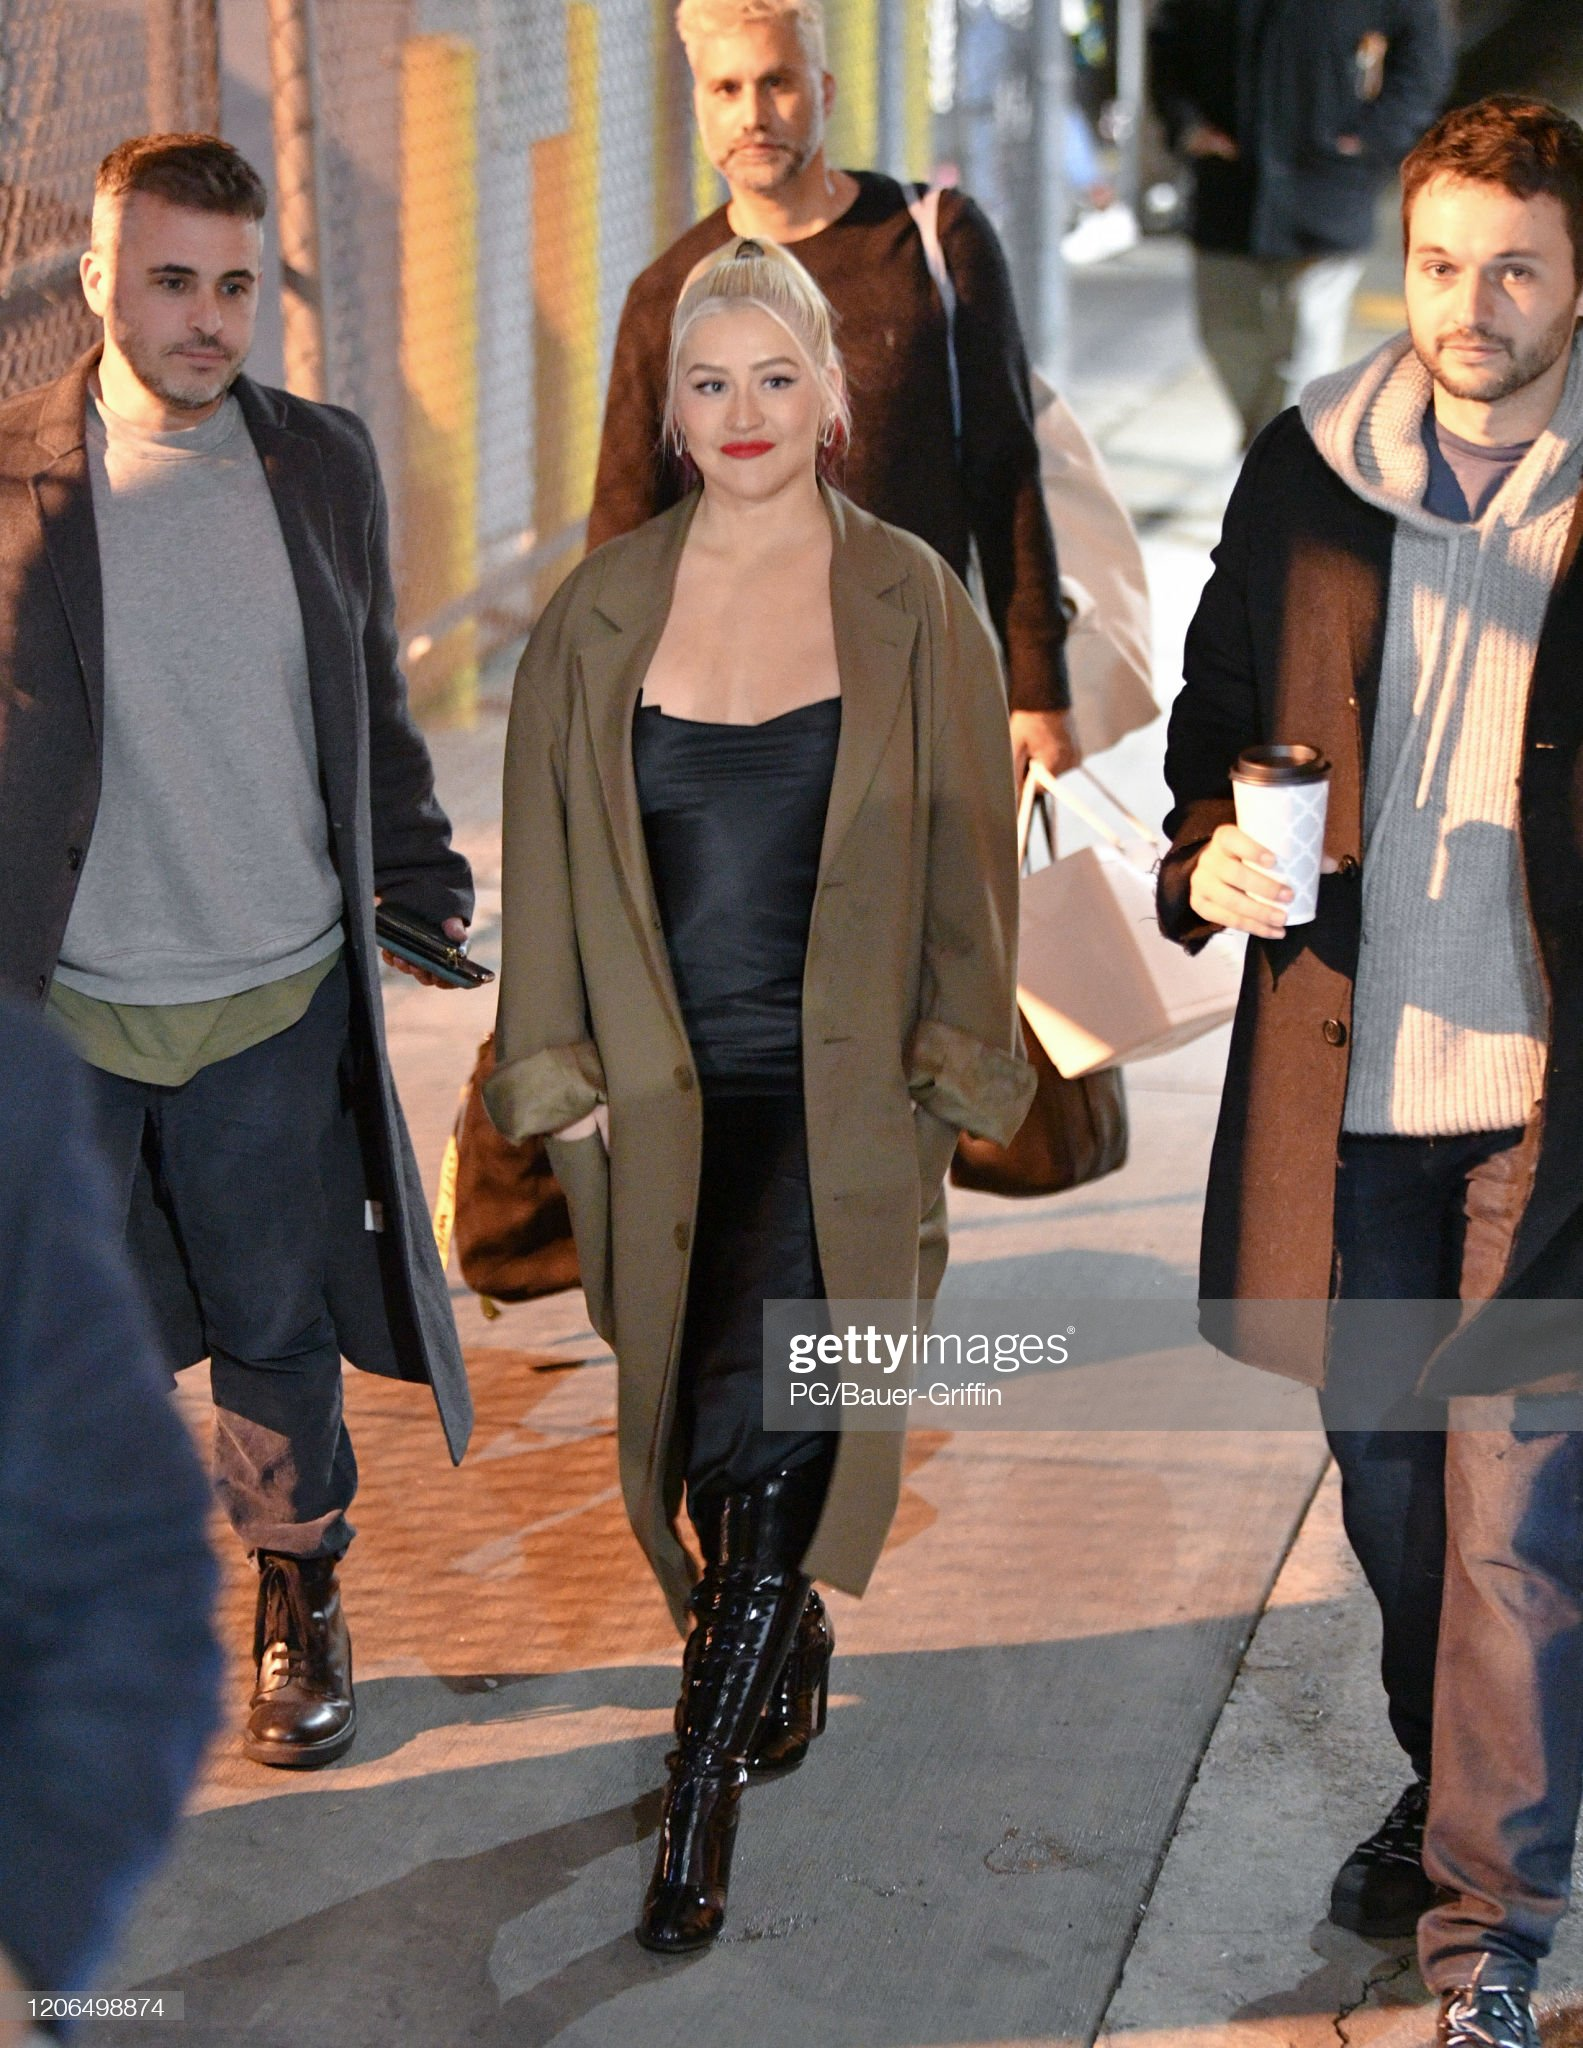 christina-aguilera-is-seen-on-march-10-2